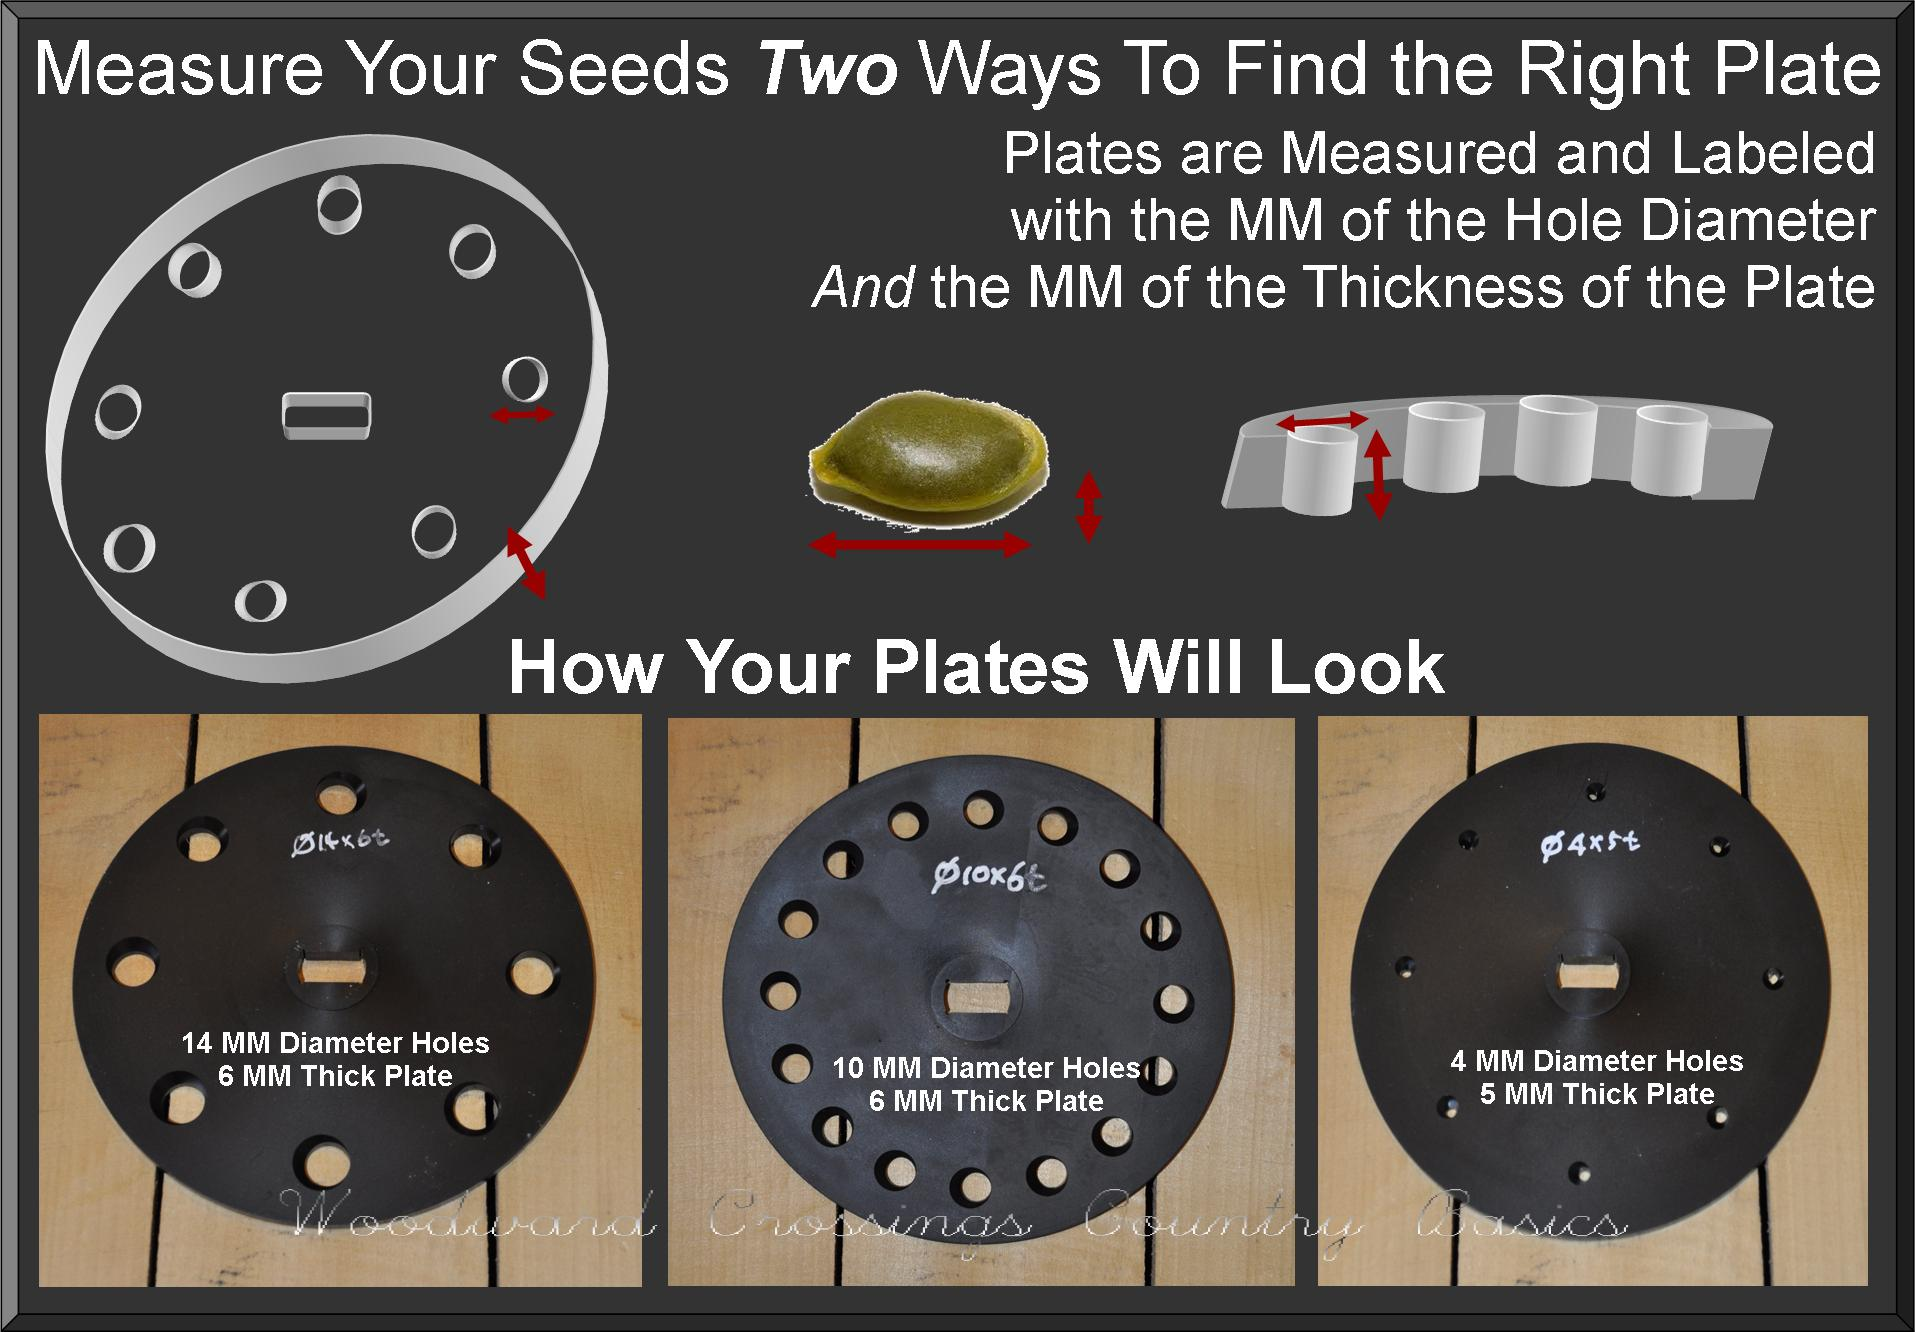 TD-1 Plate Dimensions and Measurements